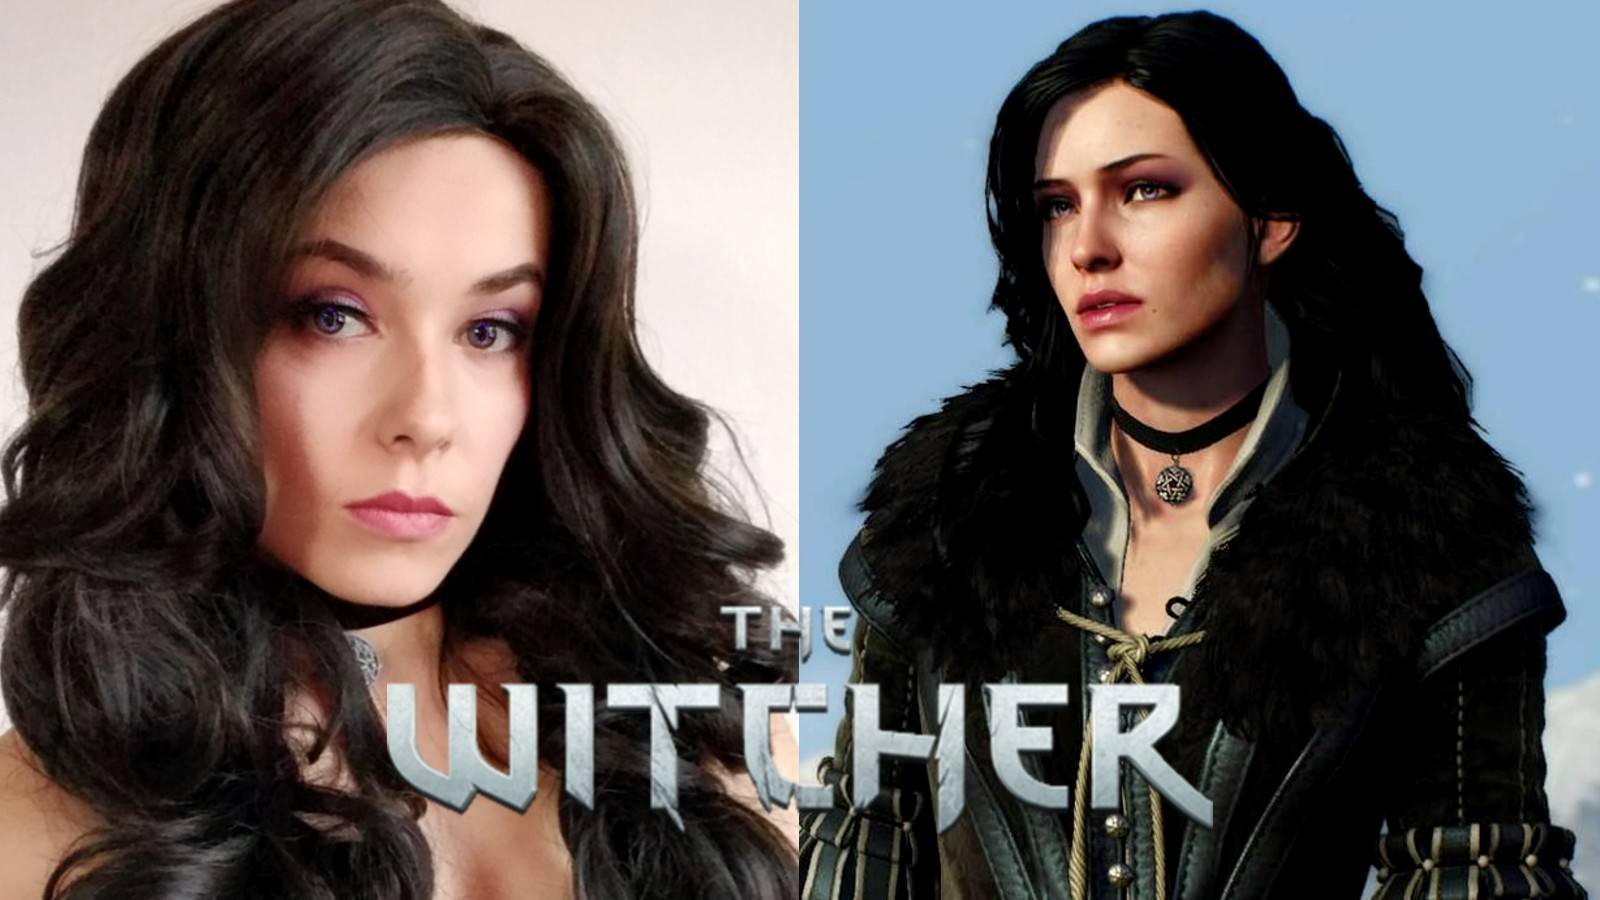 Cosplayer DariaSol next to Yennefer from The Witcher